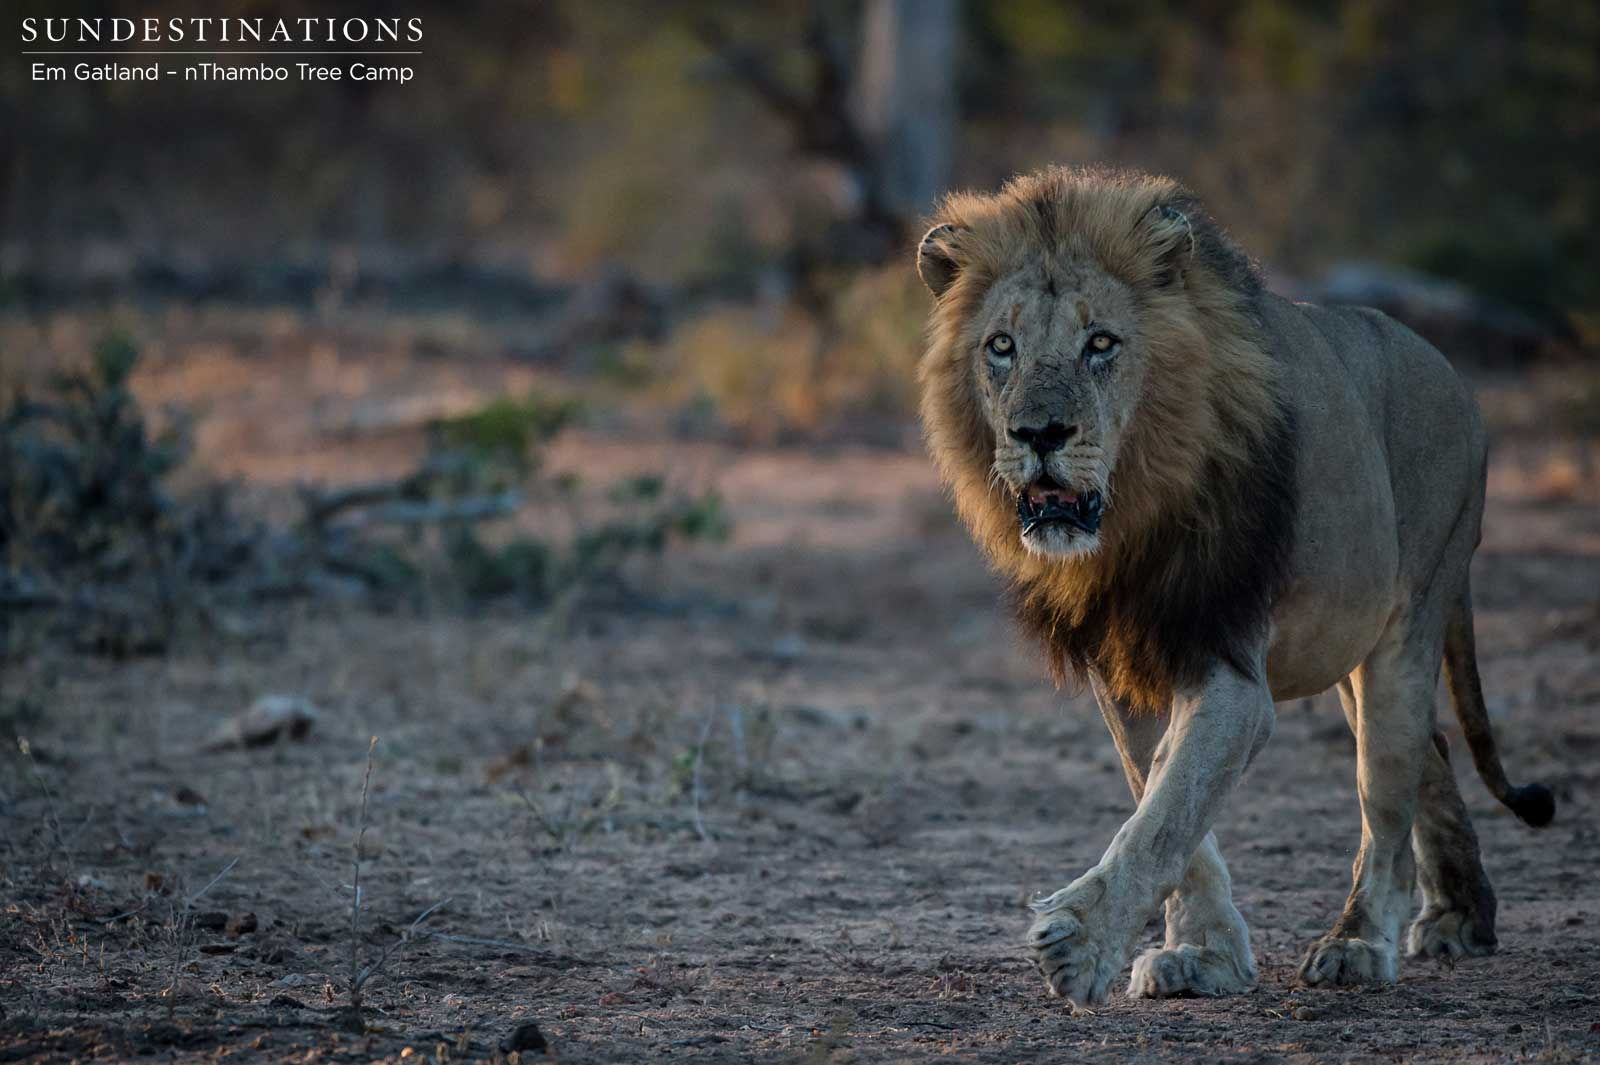 Trilogy Male Lions & Ross Breakaways Stalk Buffalo